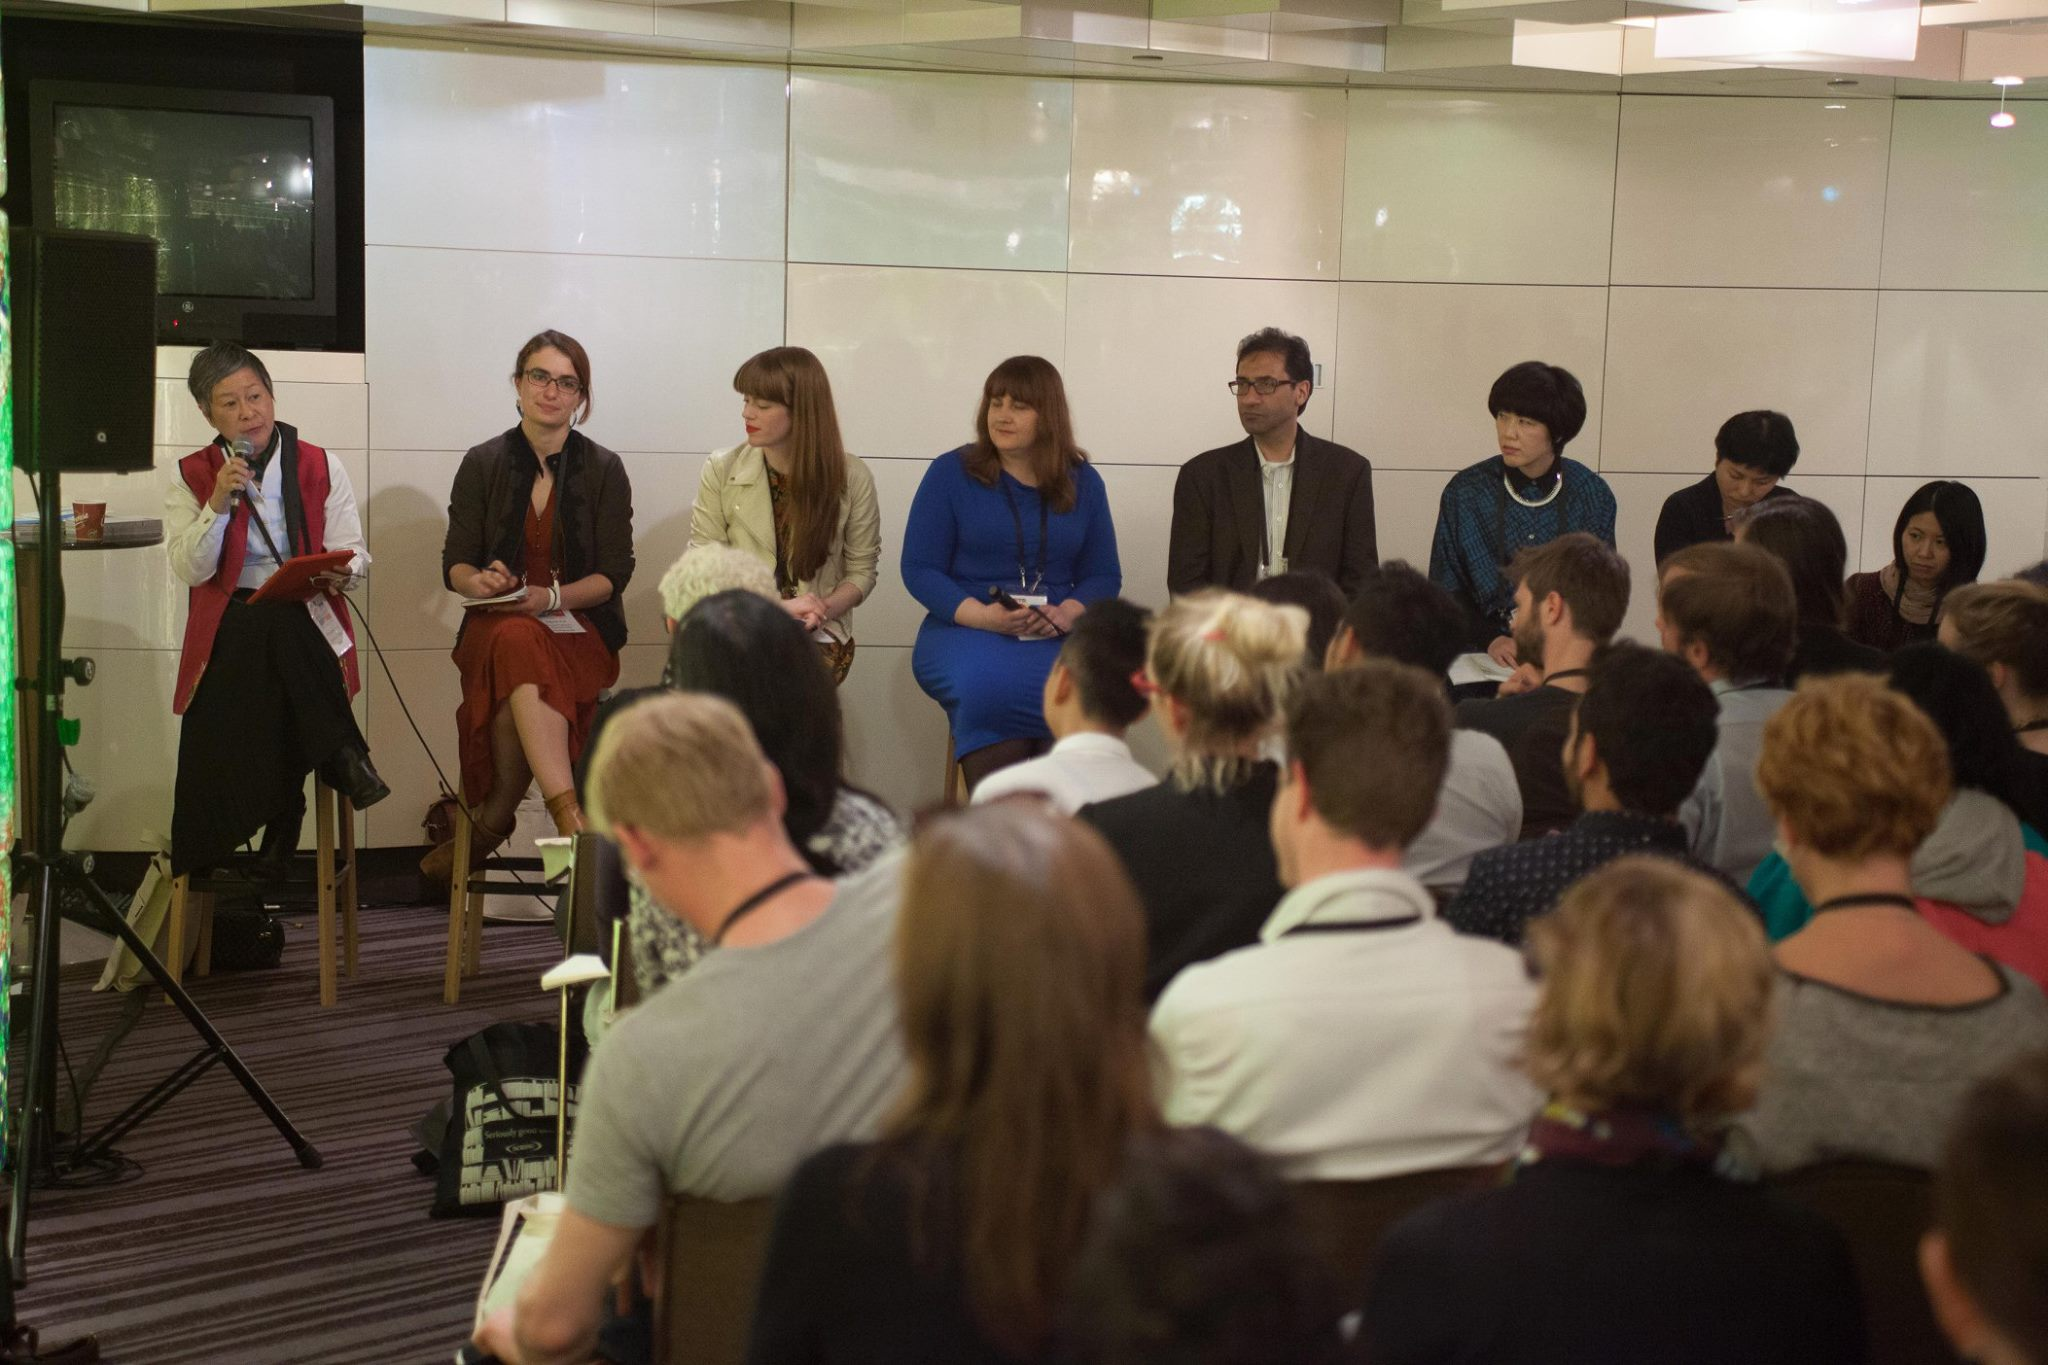 Panel presentation about artist-in-residence programmes for performing artists, IETM Satellite Meeting Melbourne, Australia, 2014